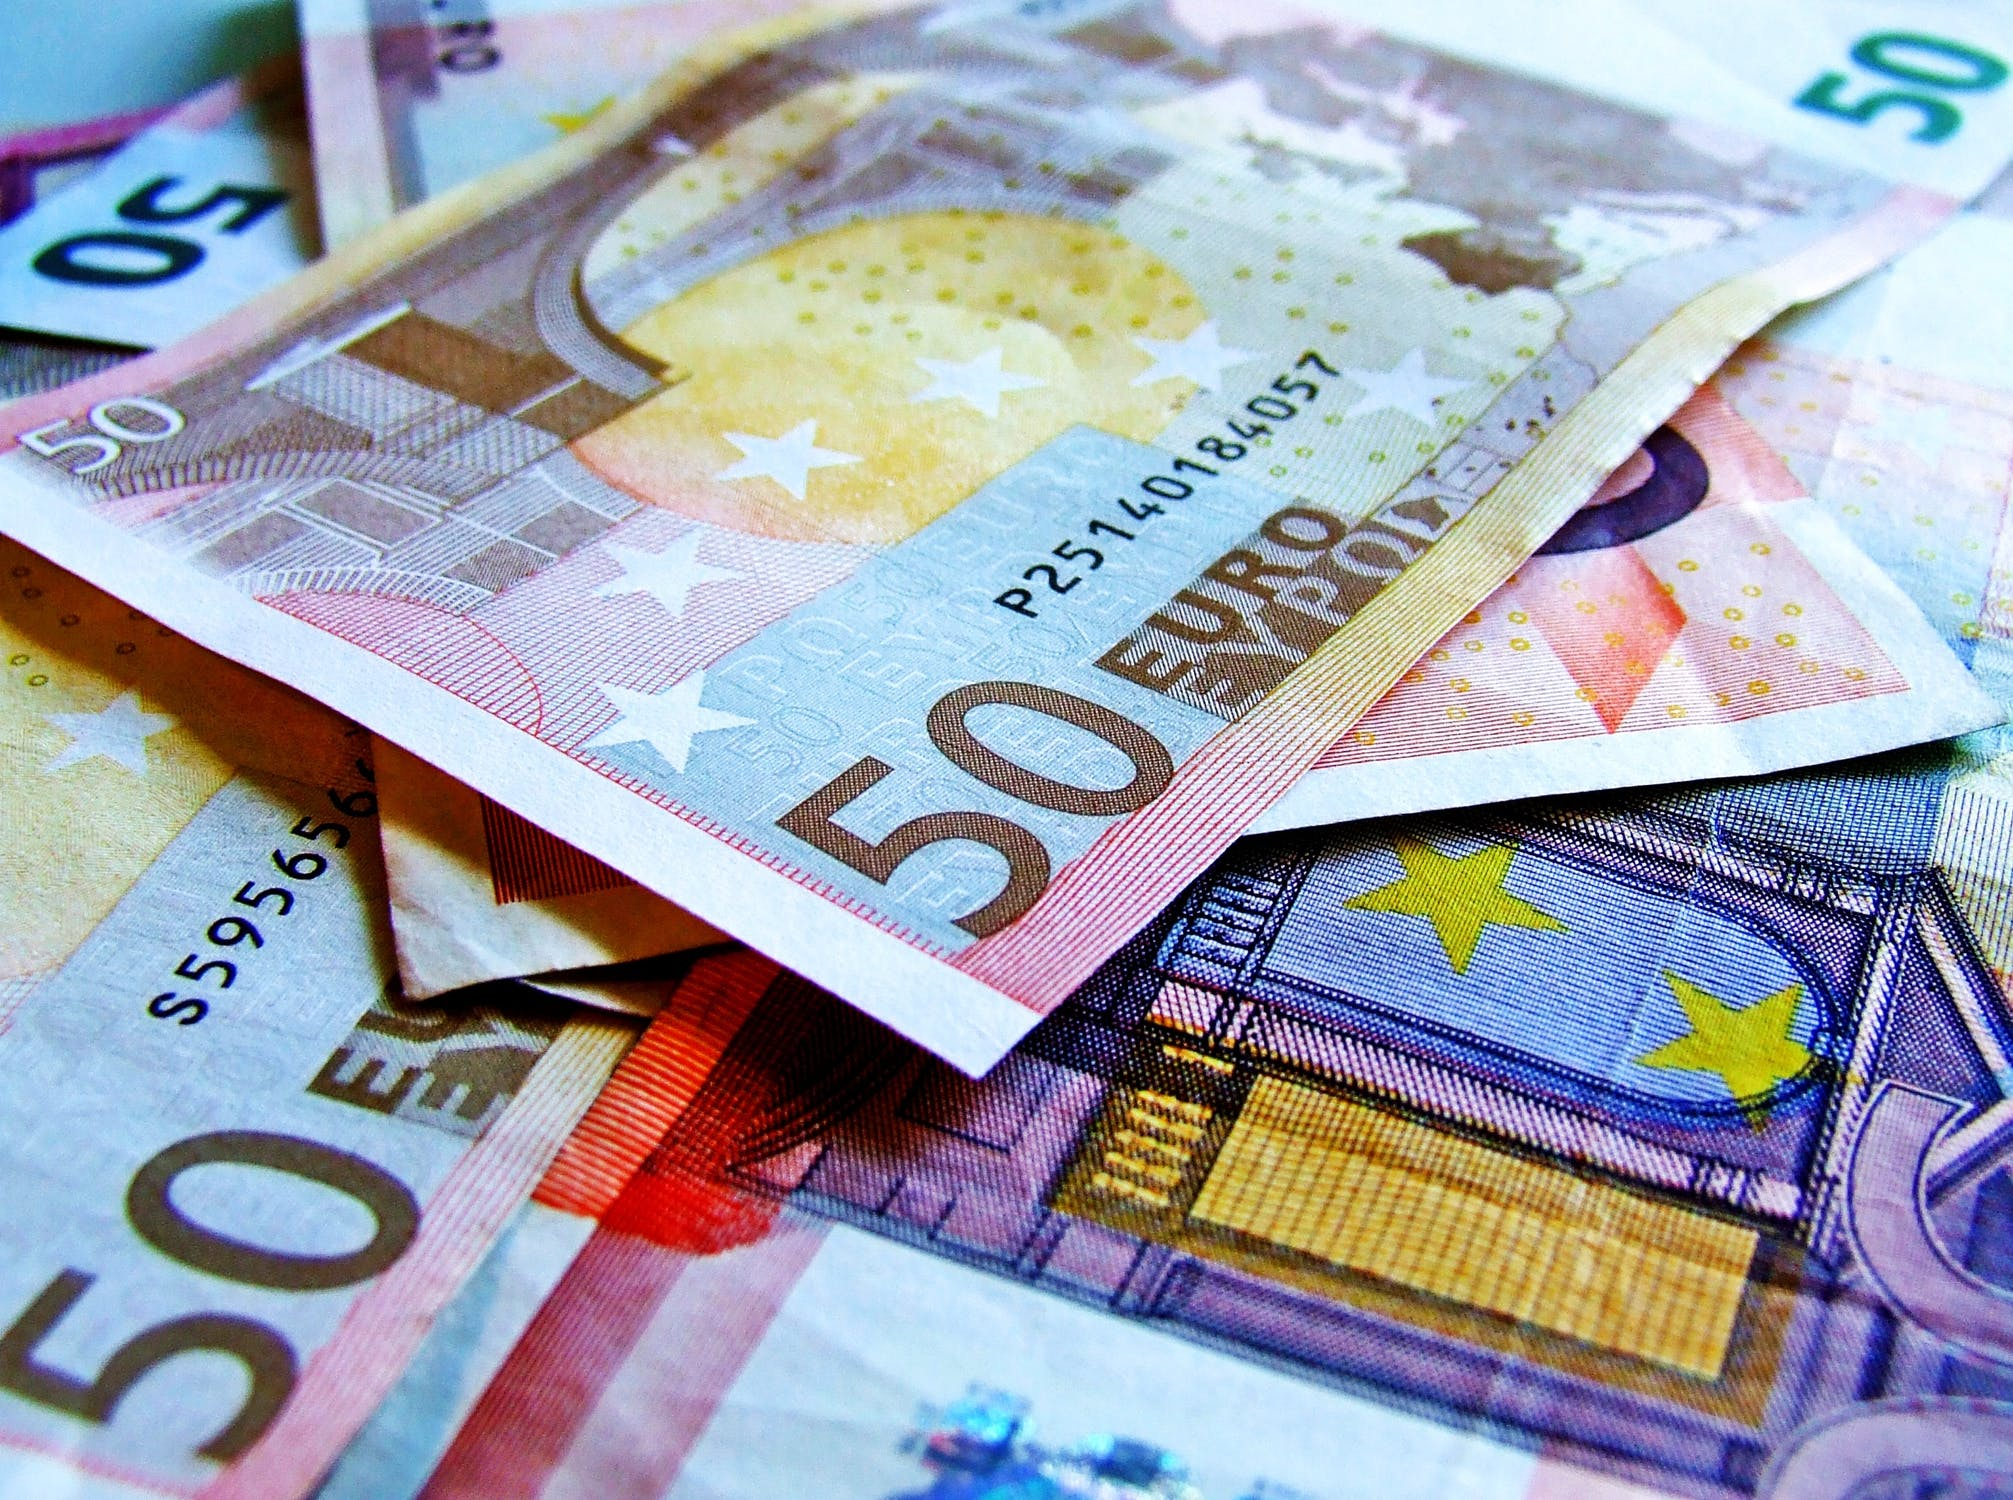 Today in history… new currency unites much of Europe